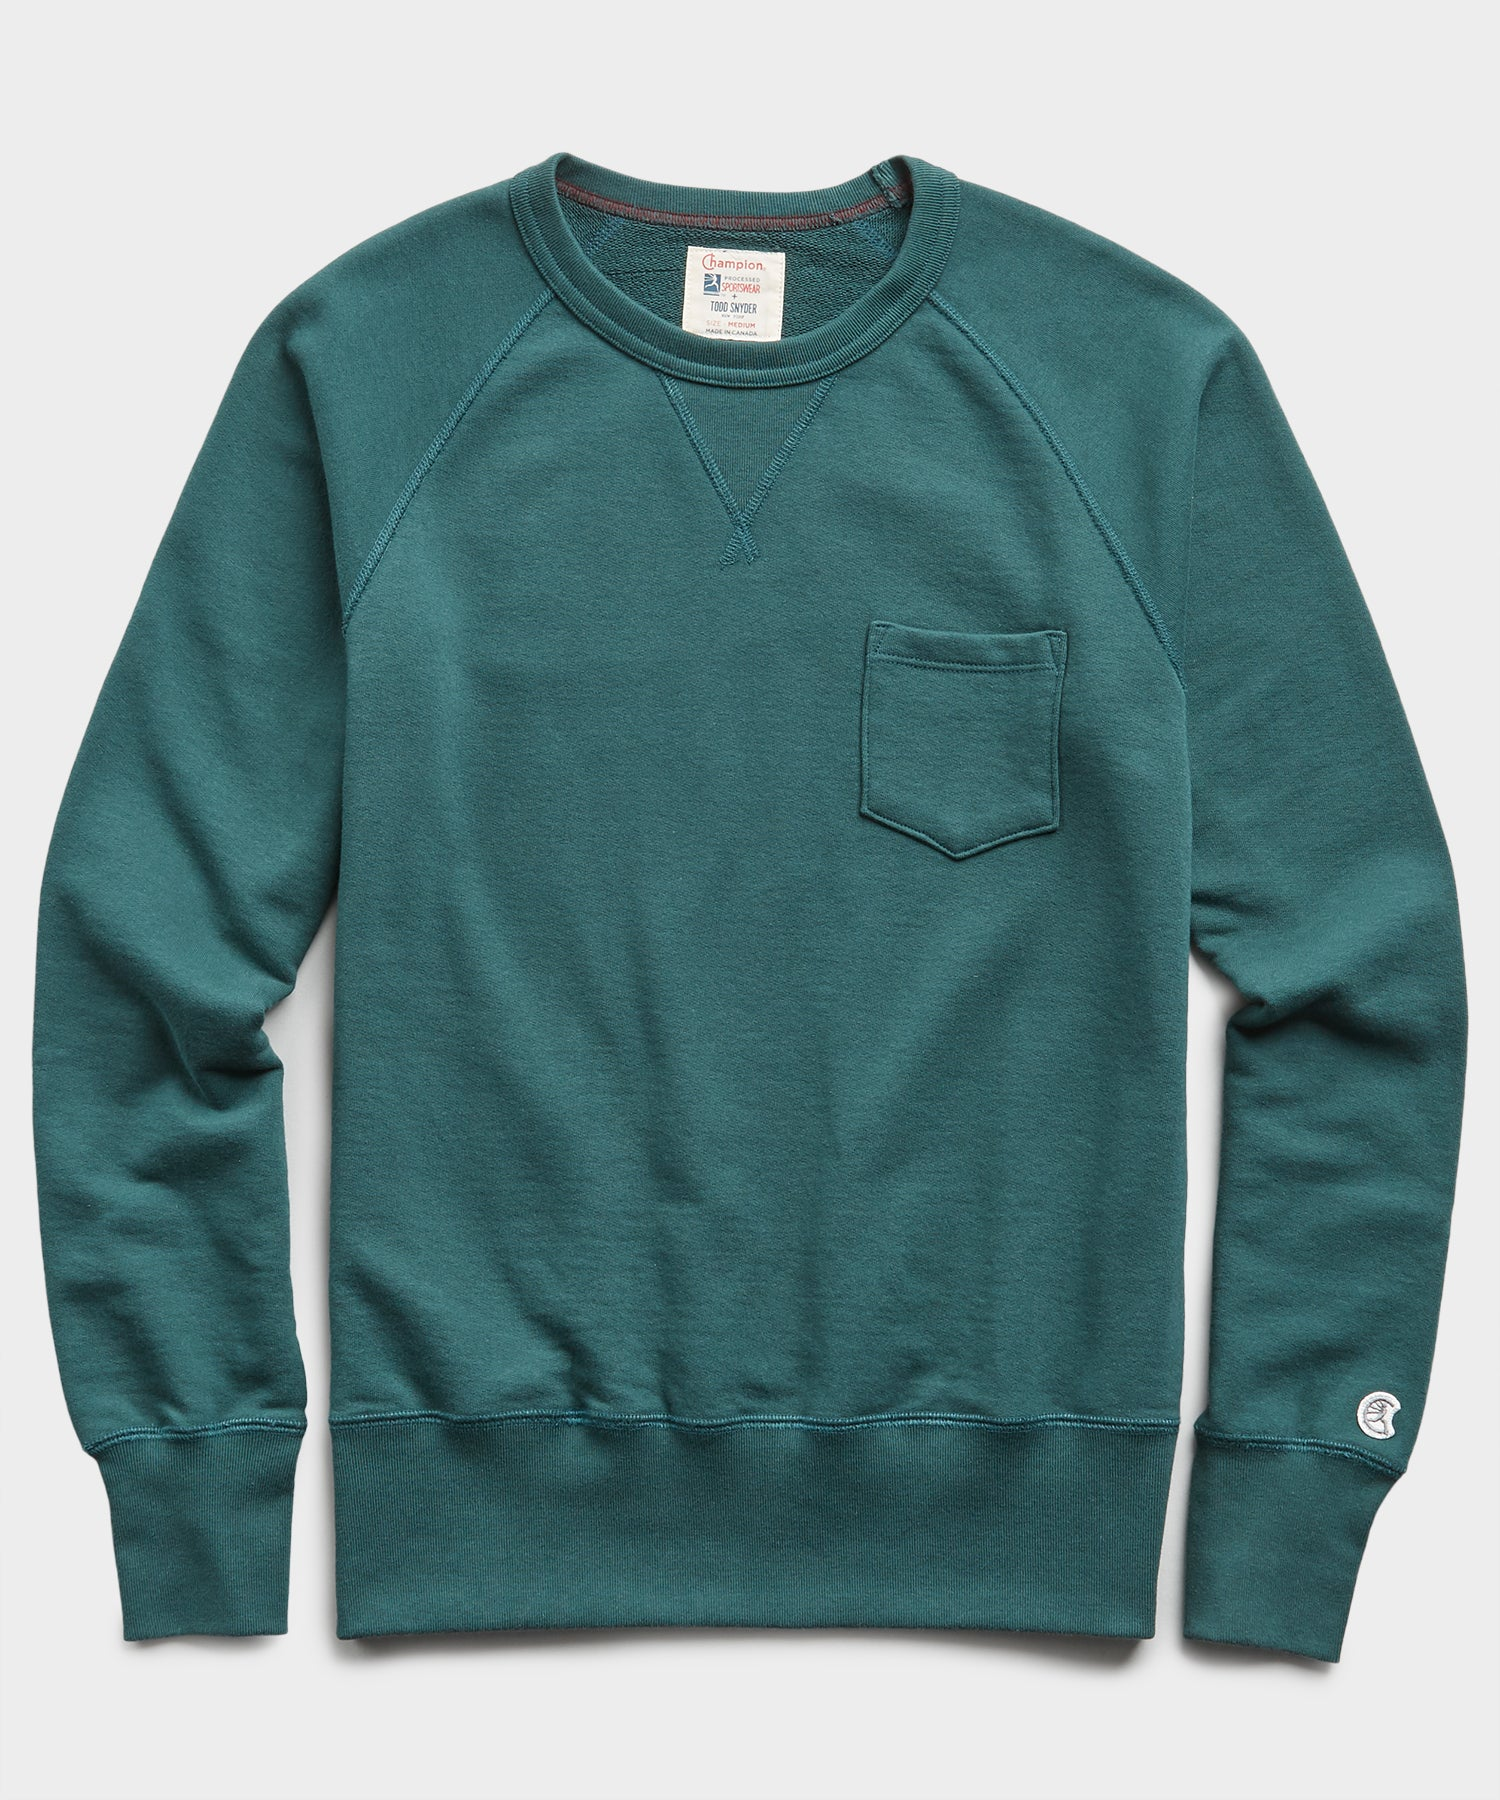 Terry Pocket Sweatshirt in Storm Green